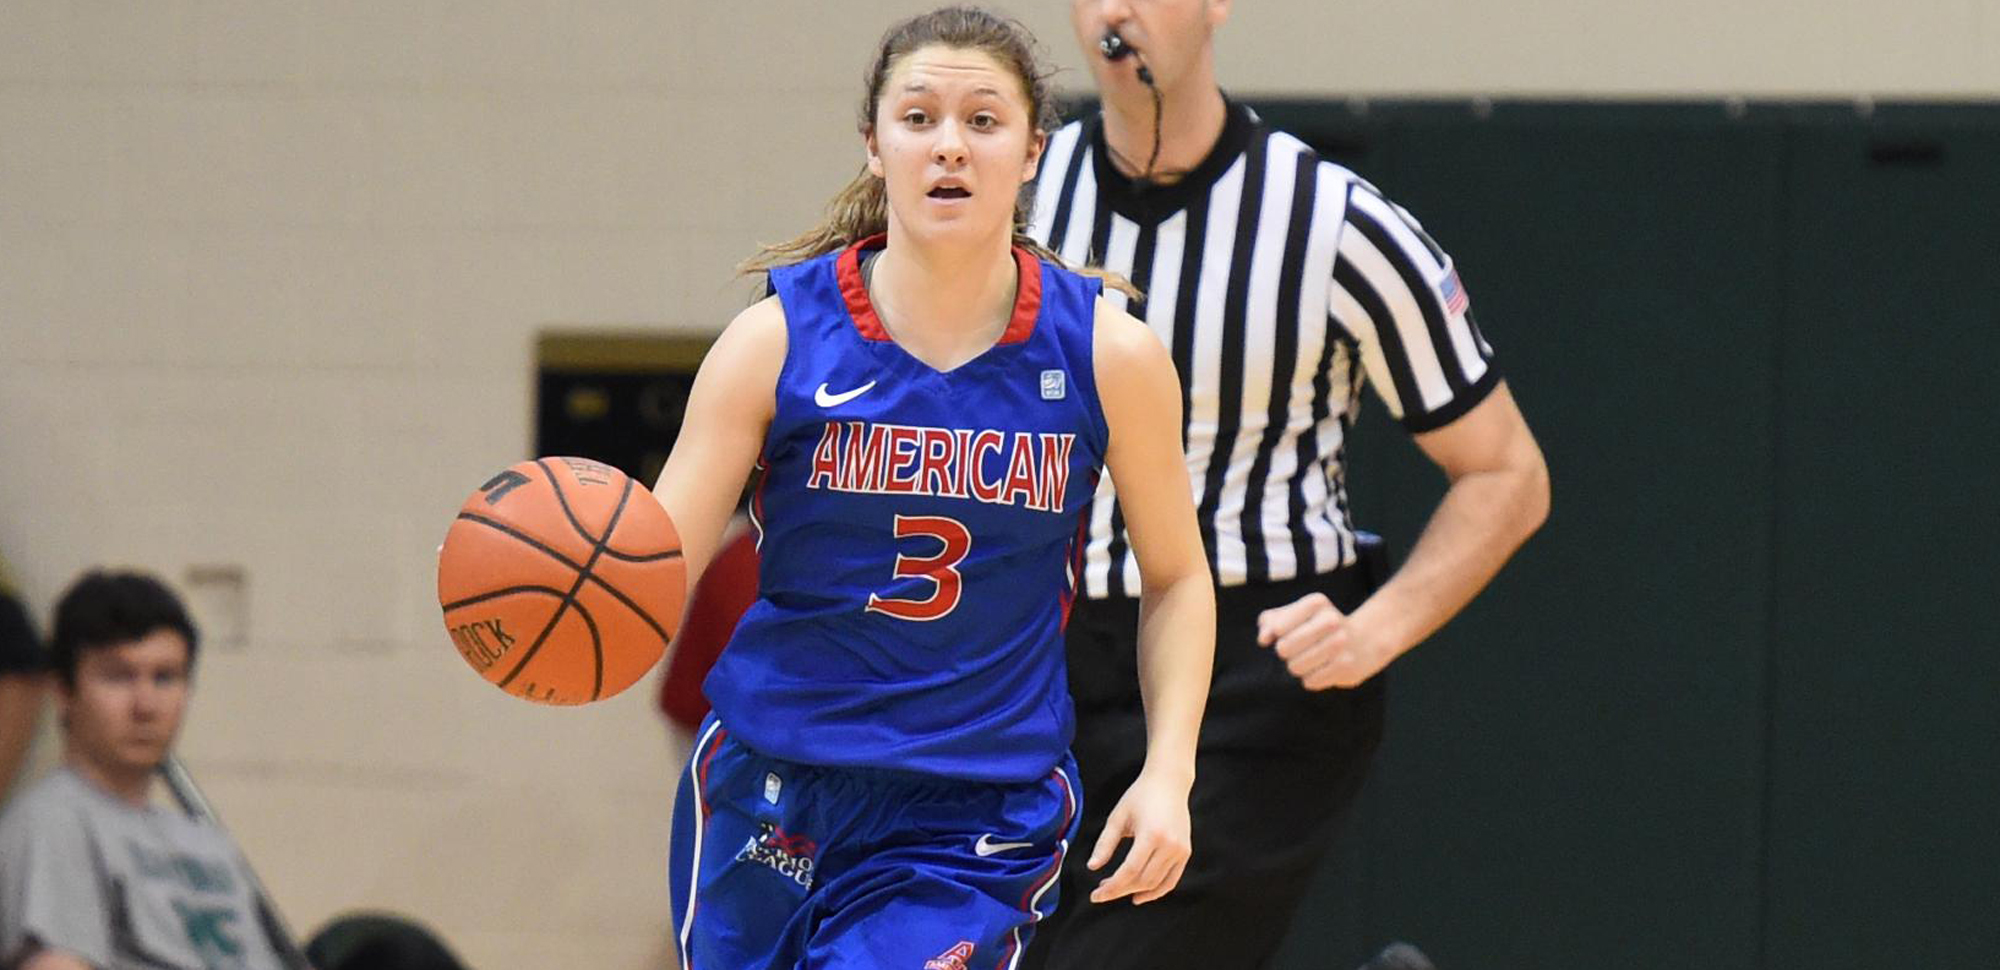 Kaitlyn Lewis, who played at American University for the last four years, has been named an assistant coach for the women's basketball program effective July 15.